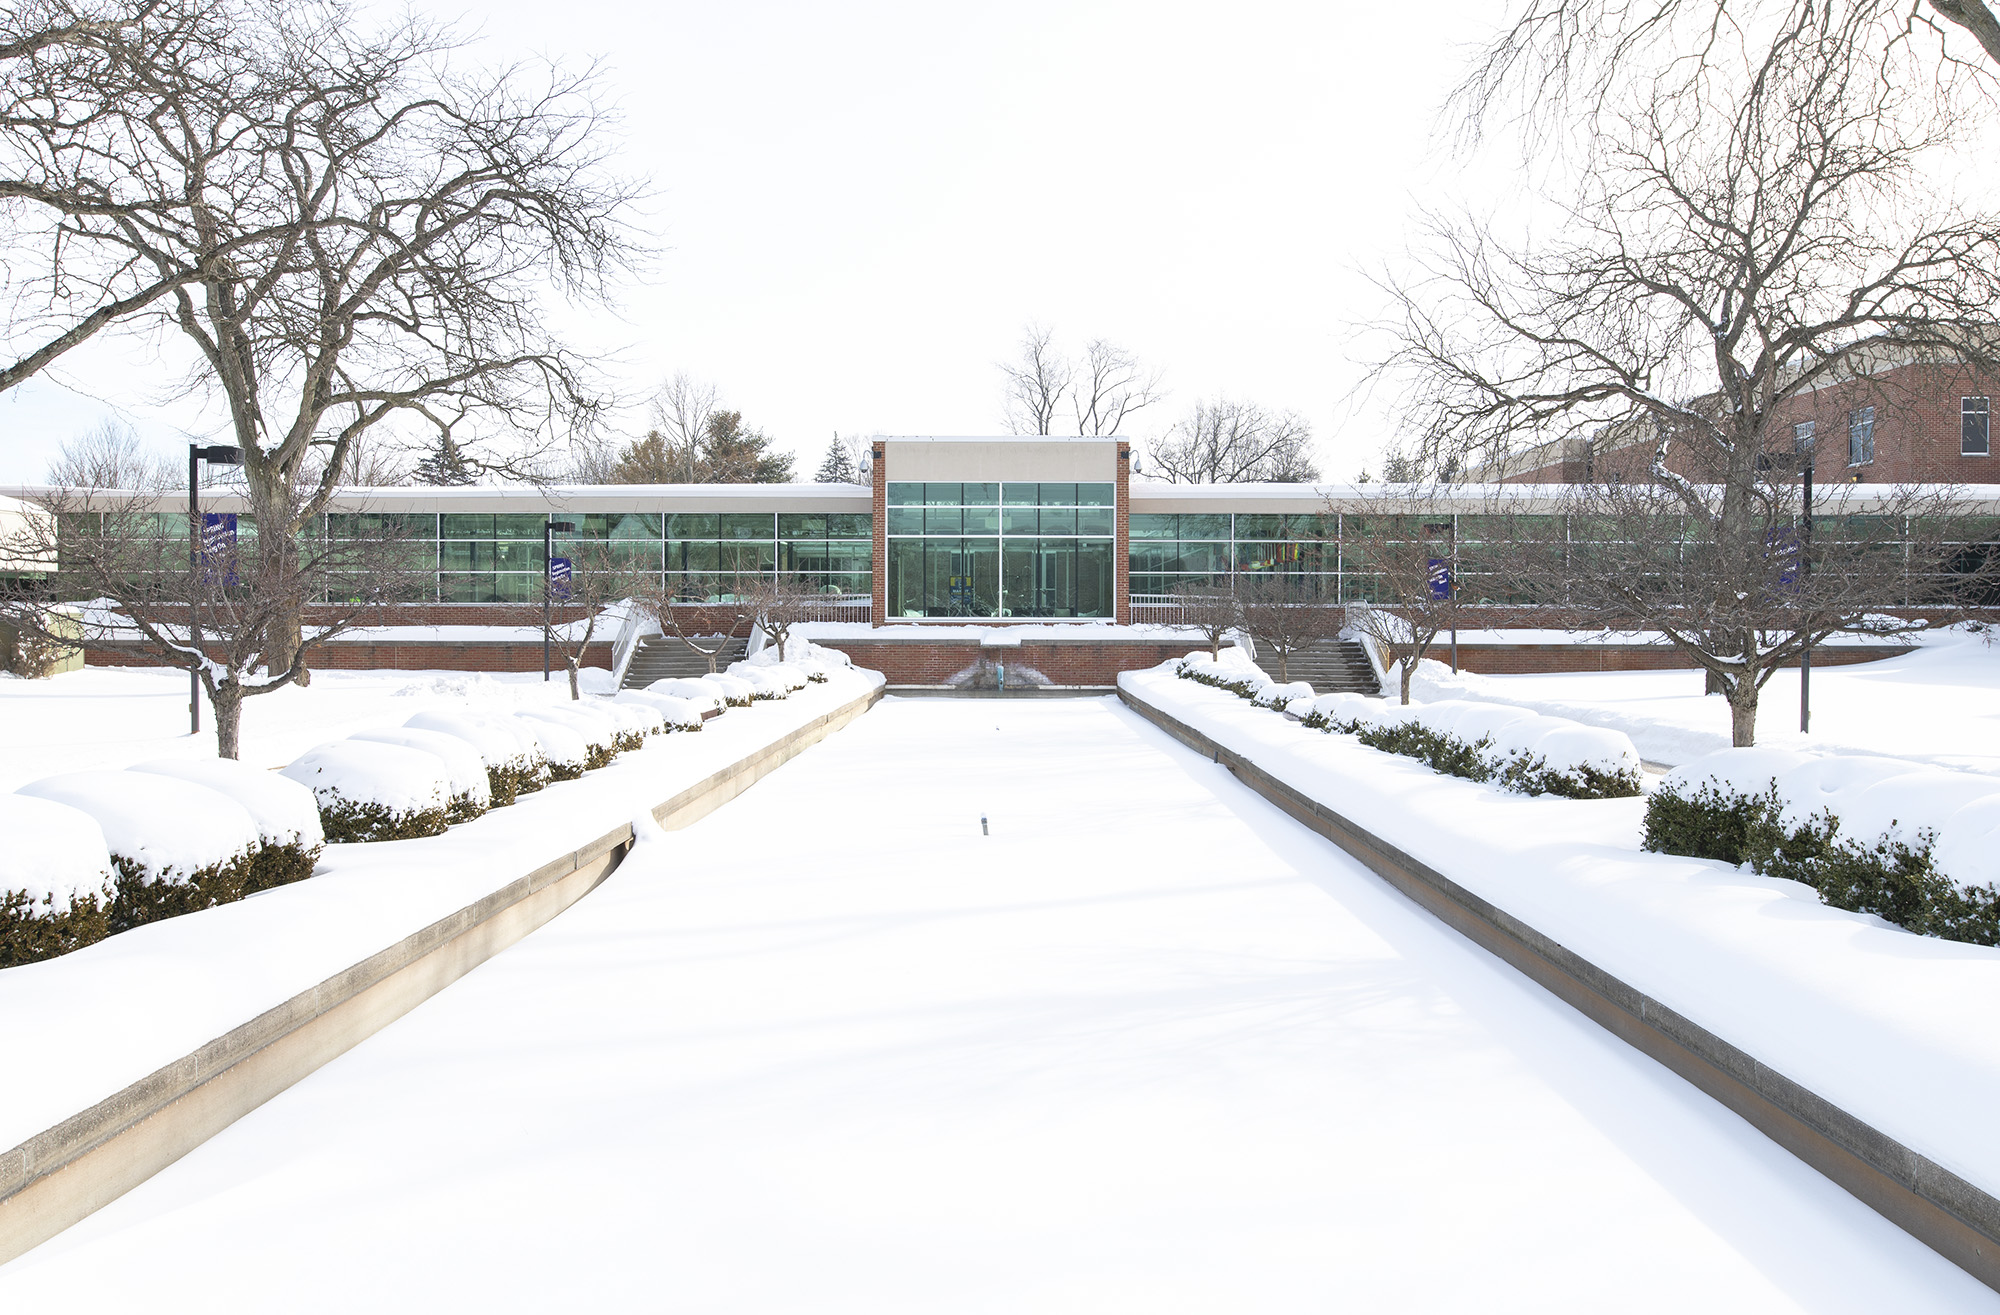 Snow blankets the reflecting pools at the entrance to KCC's North Avenue campus in Battle Creek.